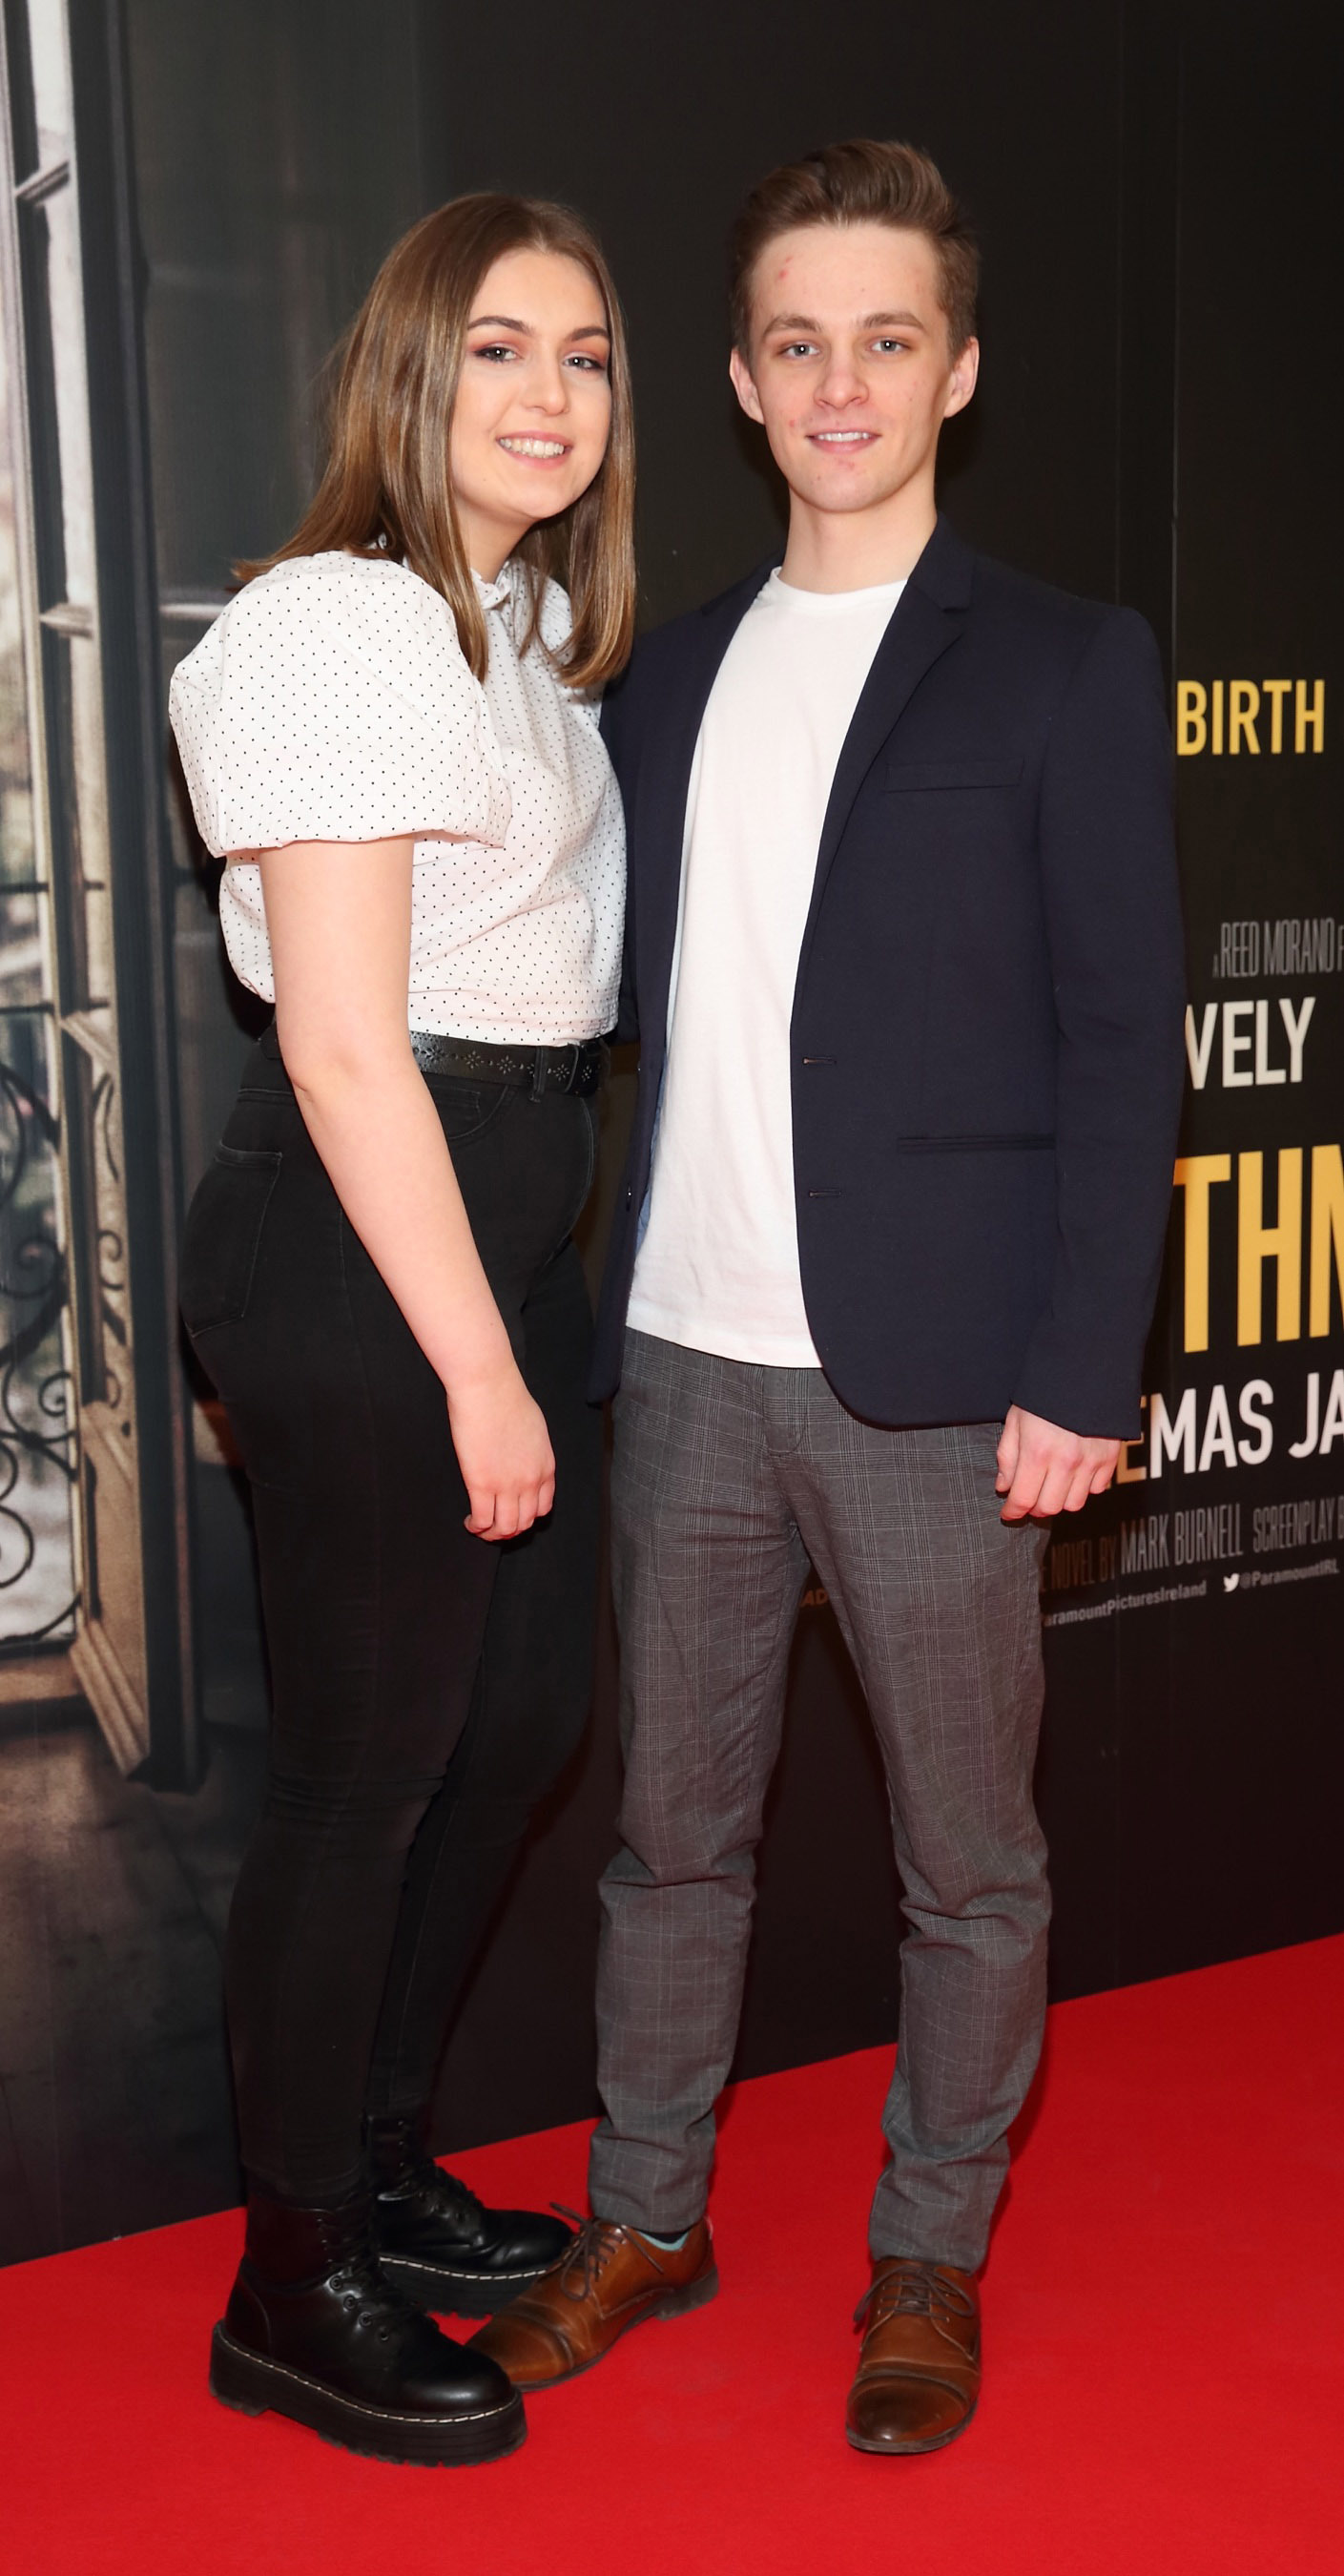 Laragh Molloy and David Duggan pictured at the special preview screening of The Rhythm Section at the Light House Cinema, Dublin. Pic: Brian McEvoy Photography